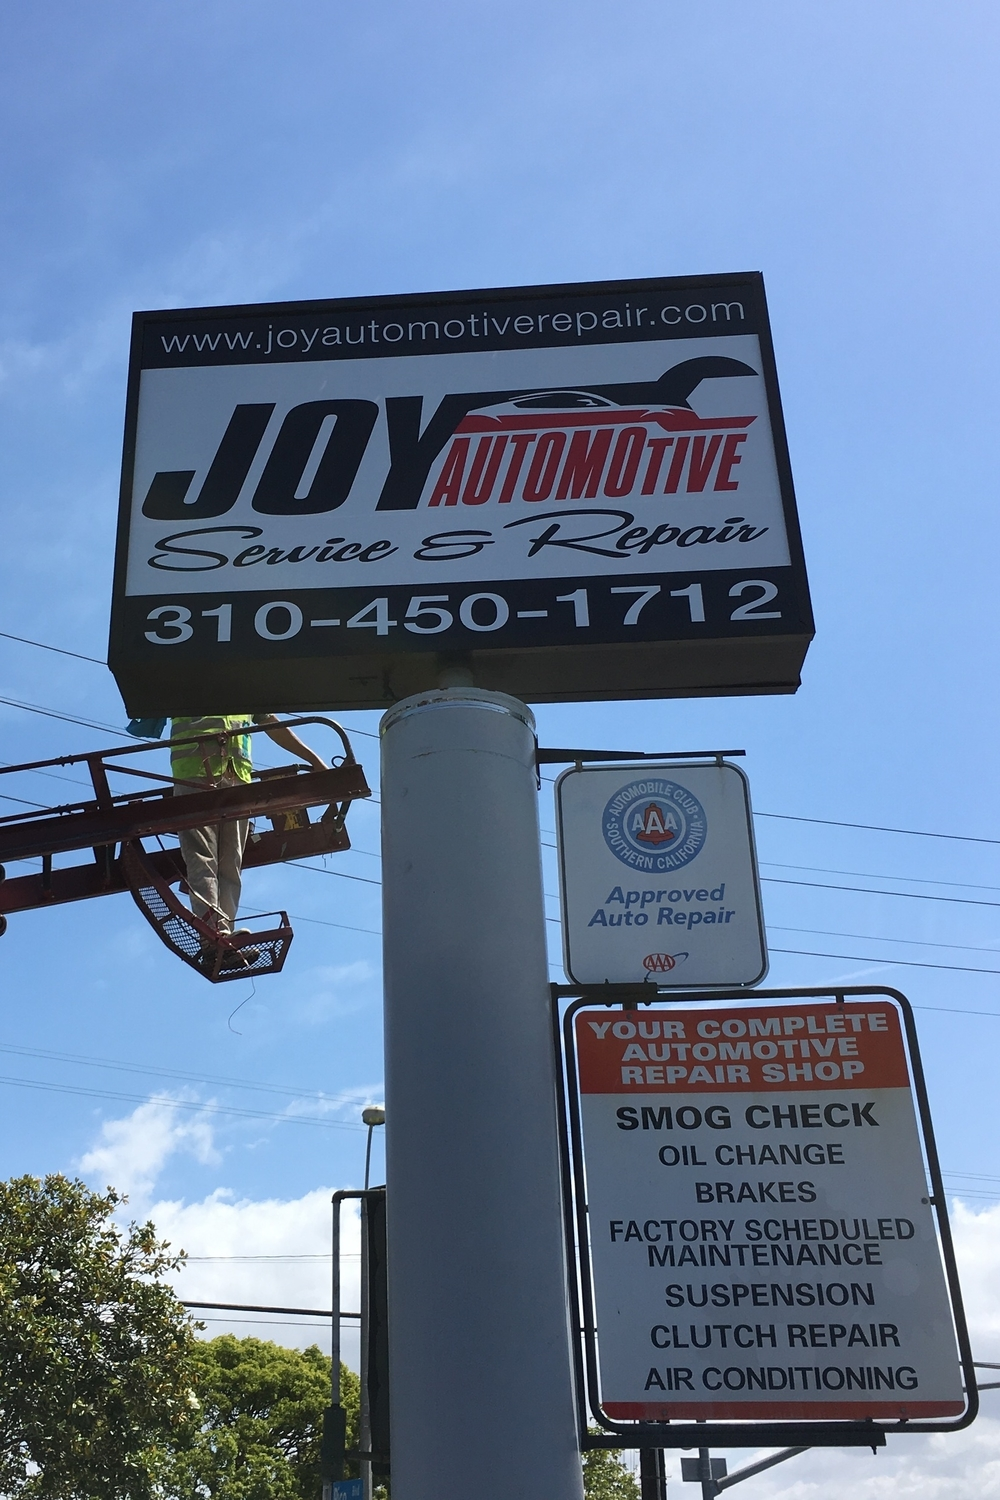 StoreFrontLightBox_JoyAutomotiveRepair_SantaMonica_PremiumSignSolutions